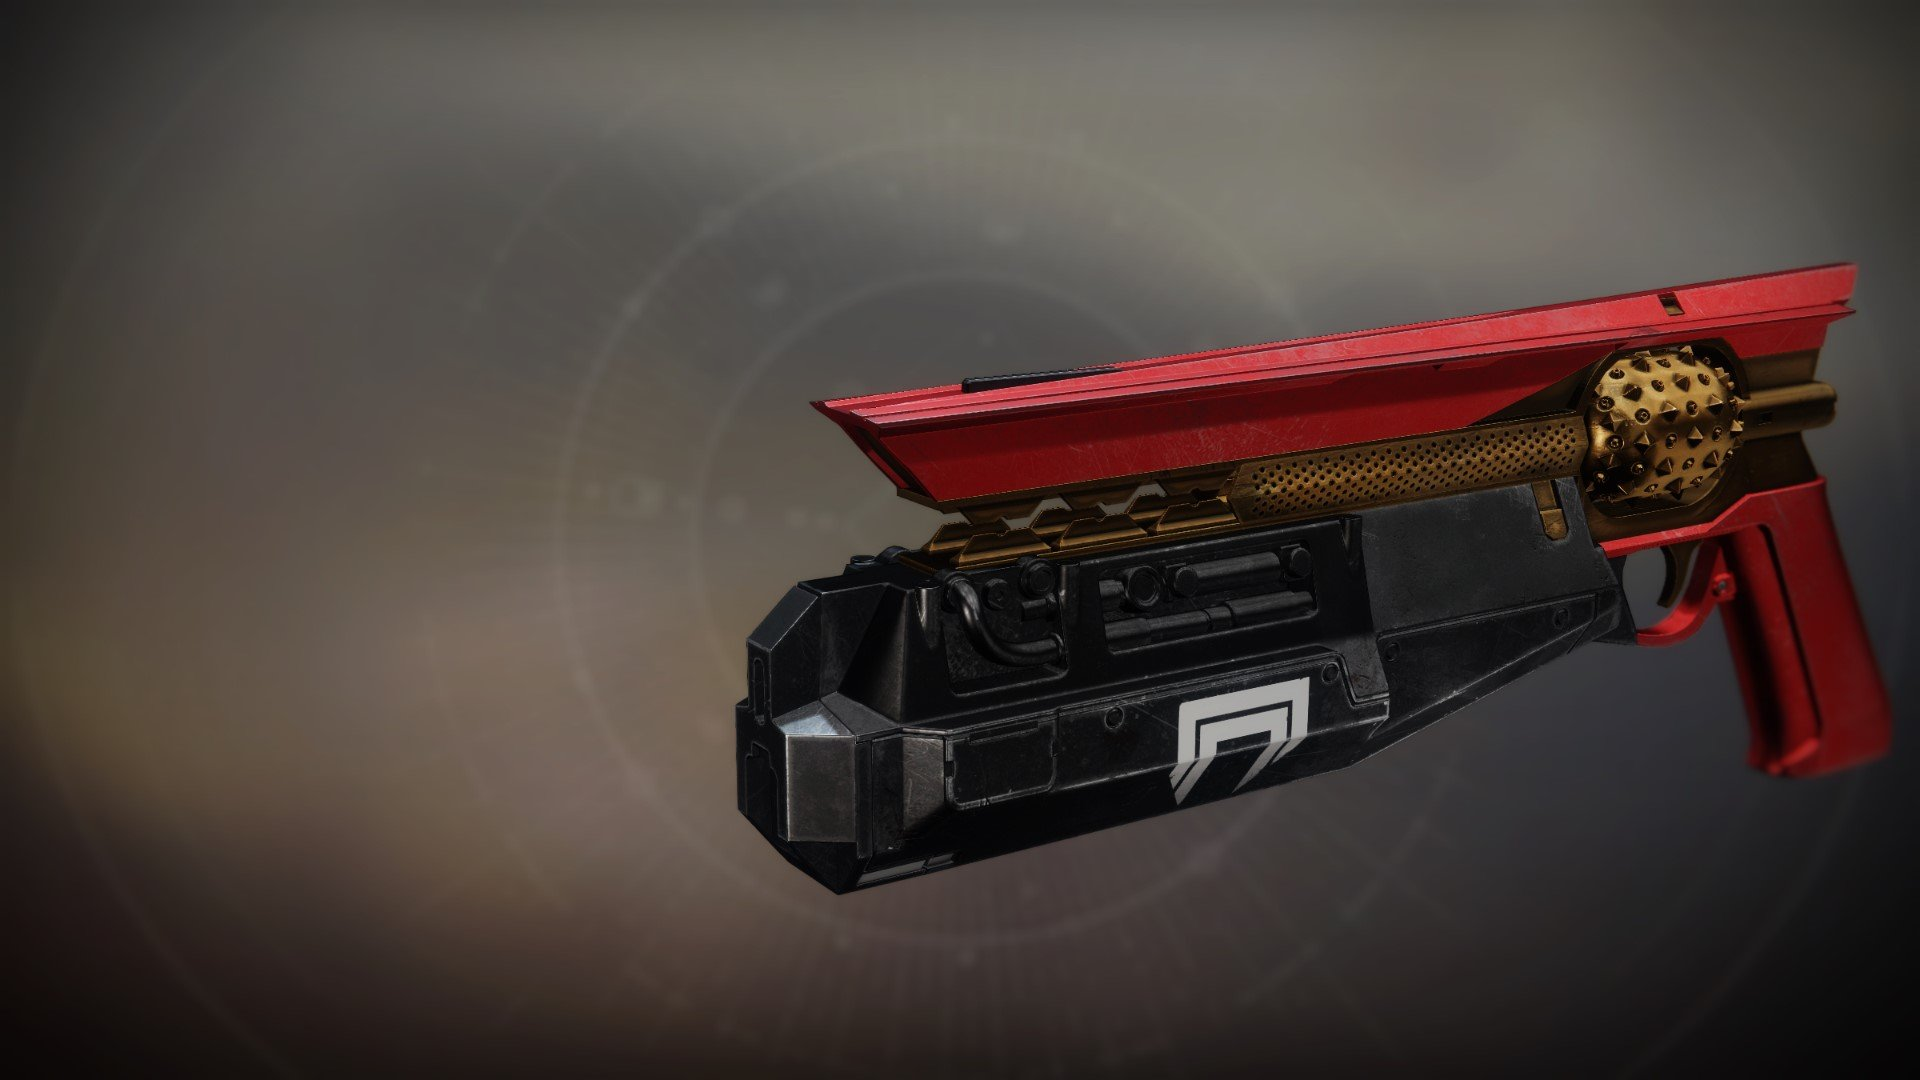 An in-game render of the Burning Red.